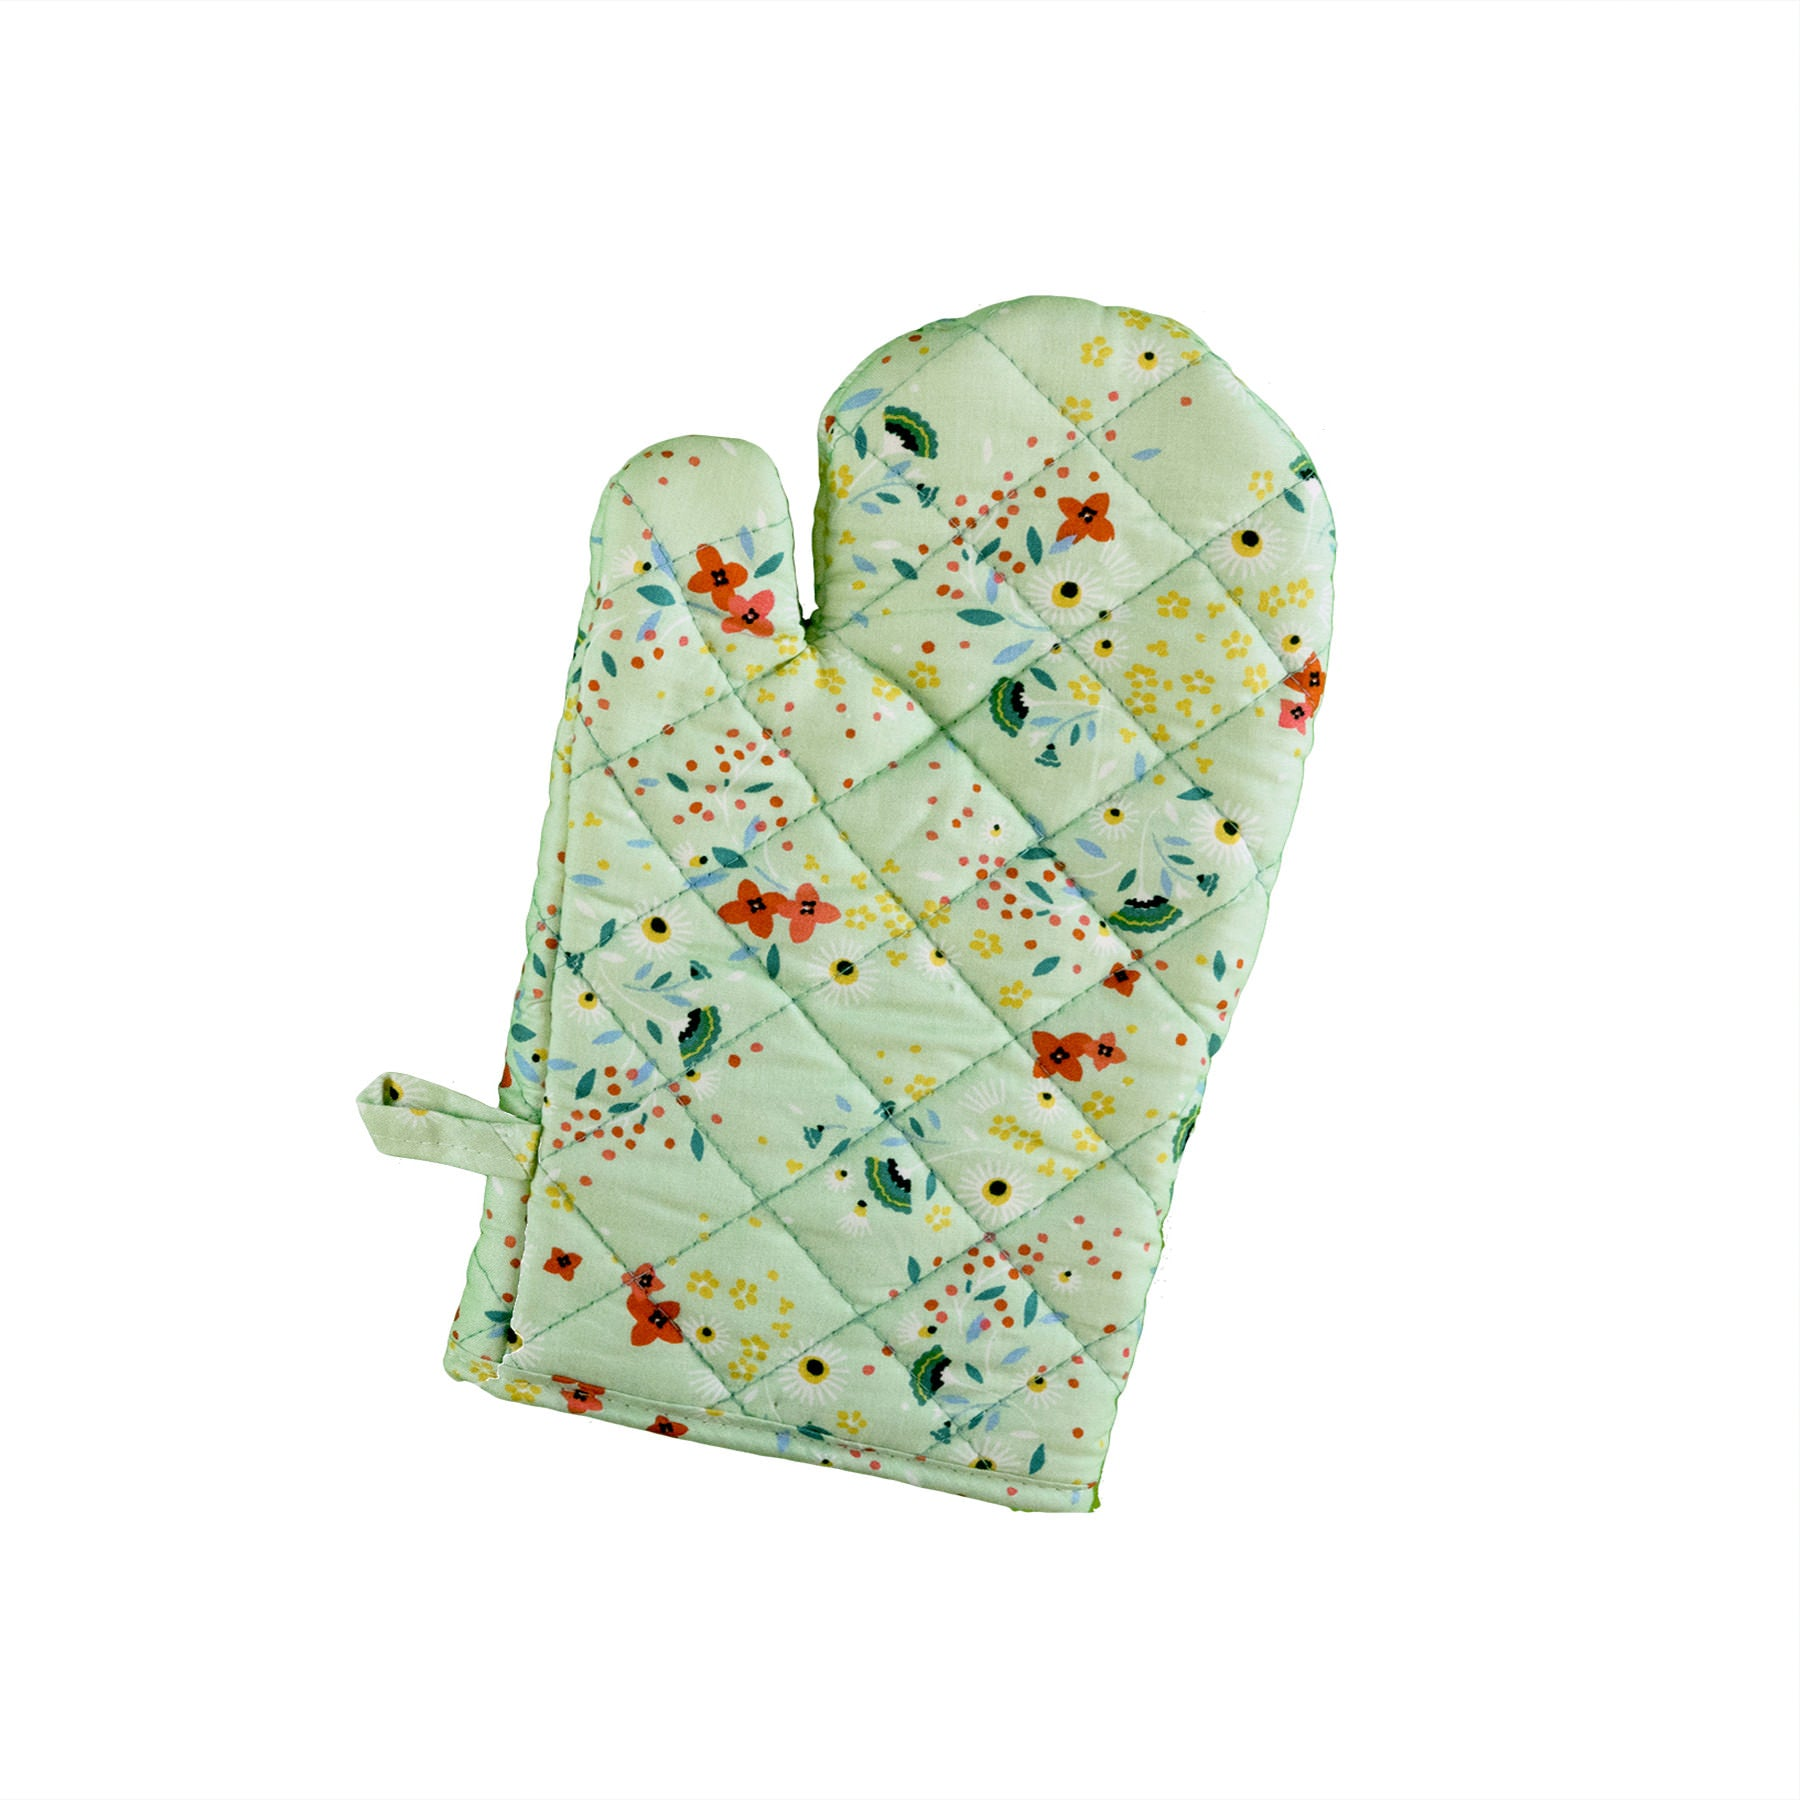 Stitch & Sparkle OVEN MITT 1 Piece Pack, Heat Resistant, 100% Cotton, Modern Scandinavian, MS Daisy Linden